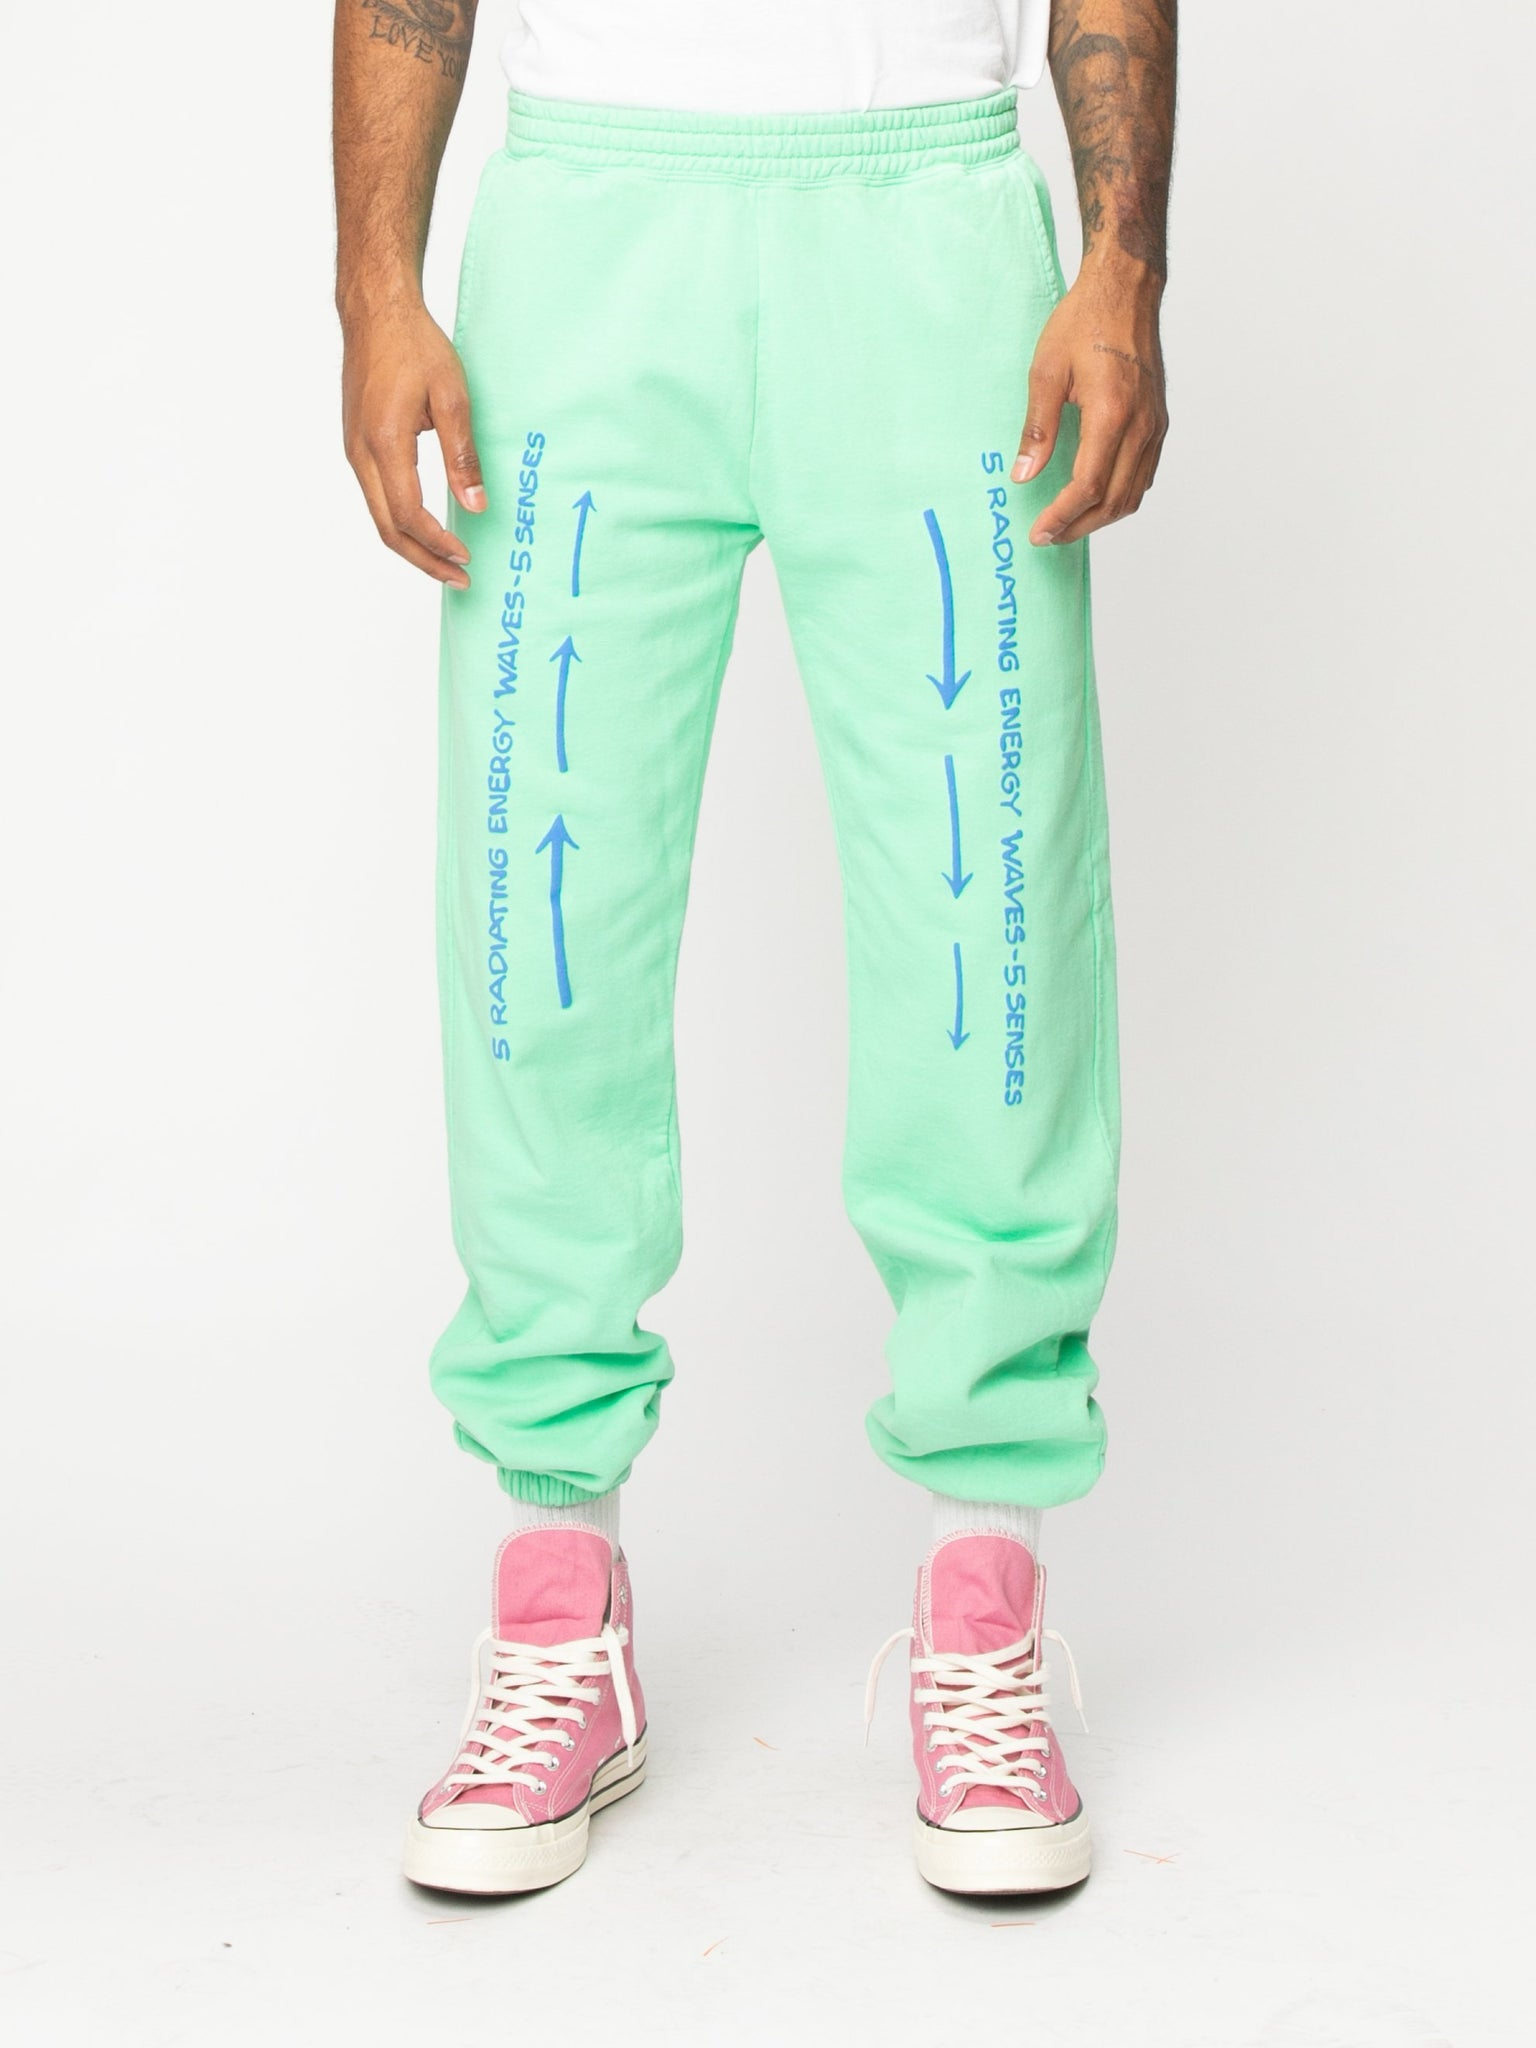 soul-energy-sweatpants